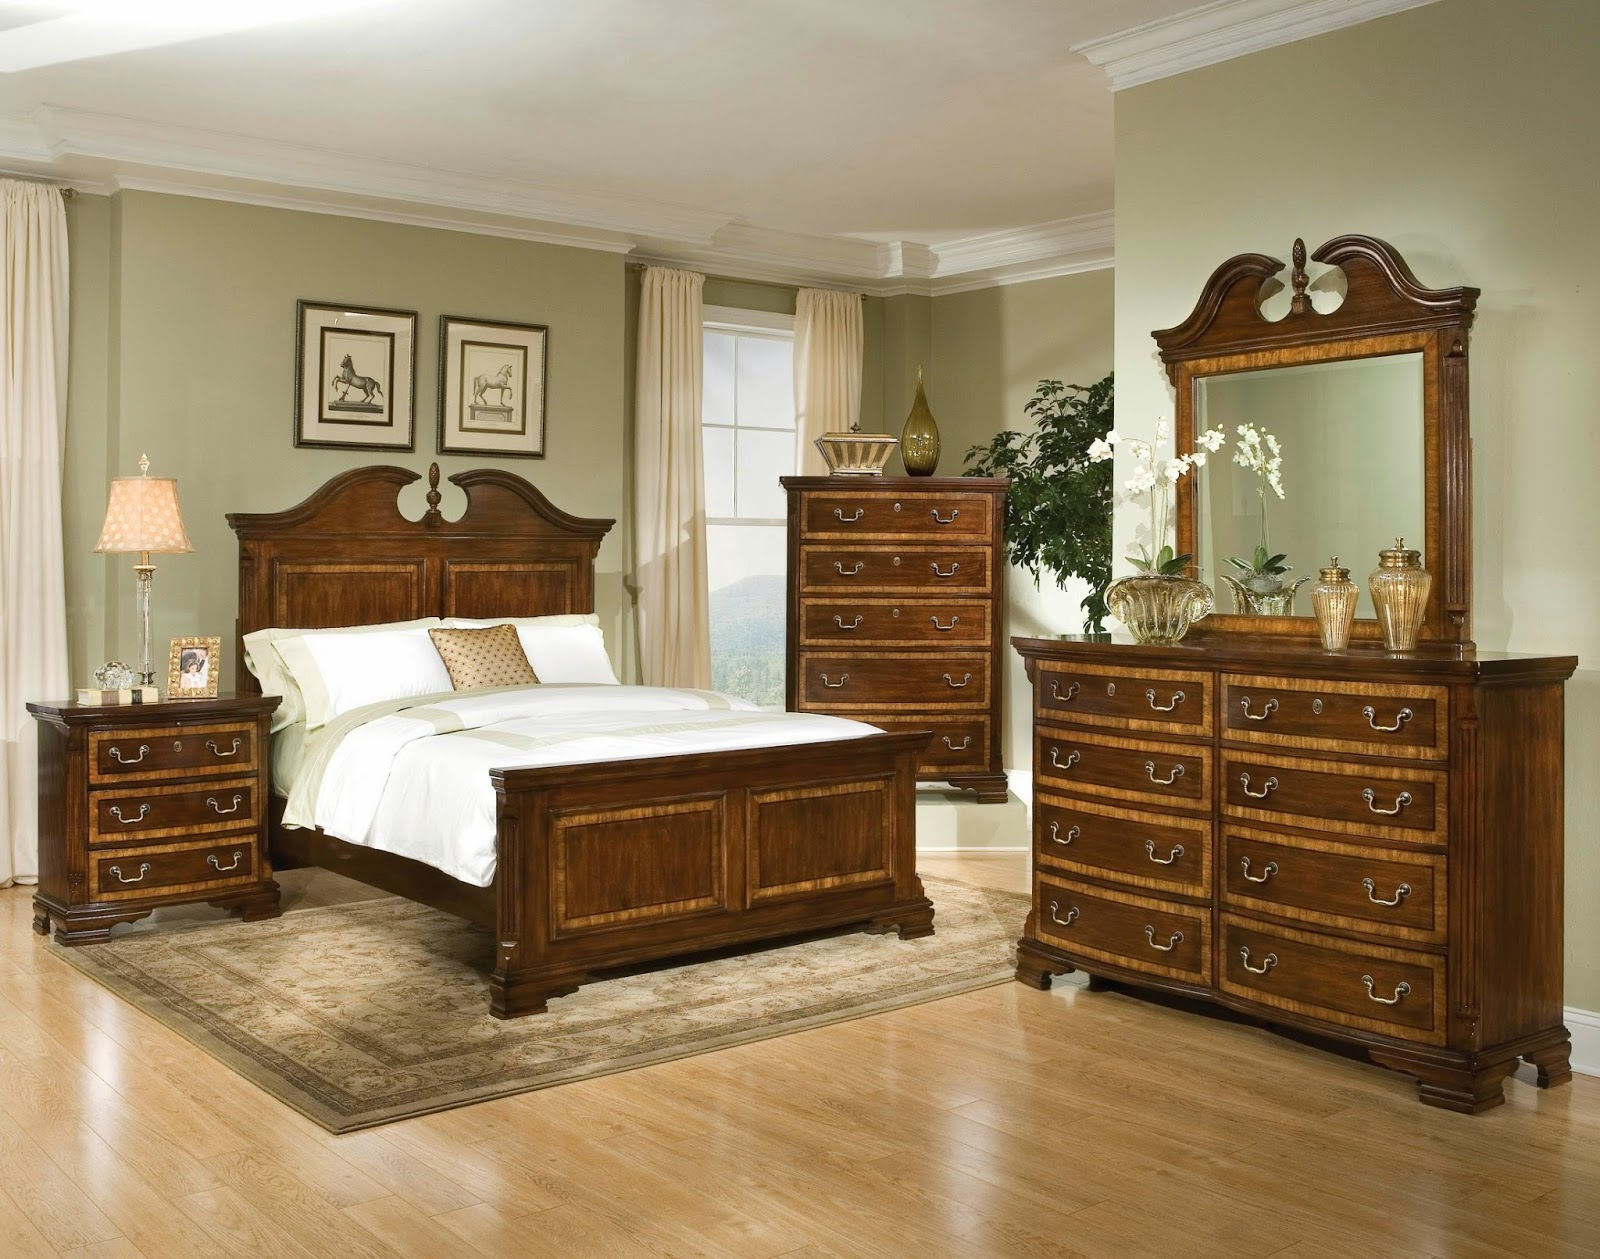 Simple romantic bedroom decorating ideas myideasbedroom com